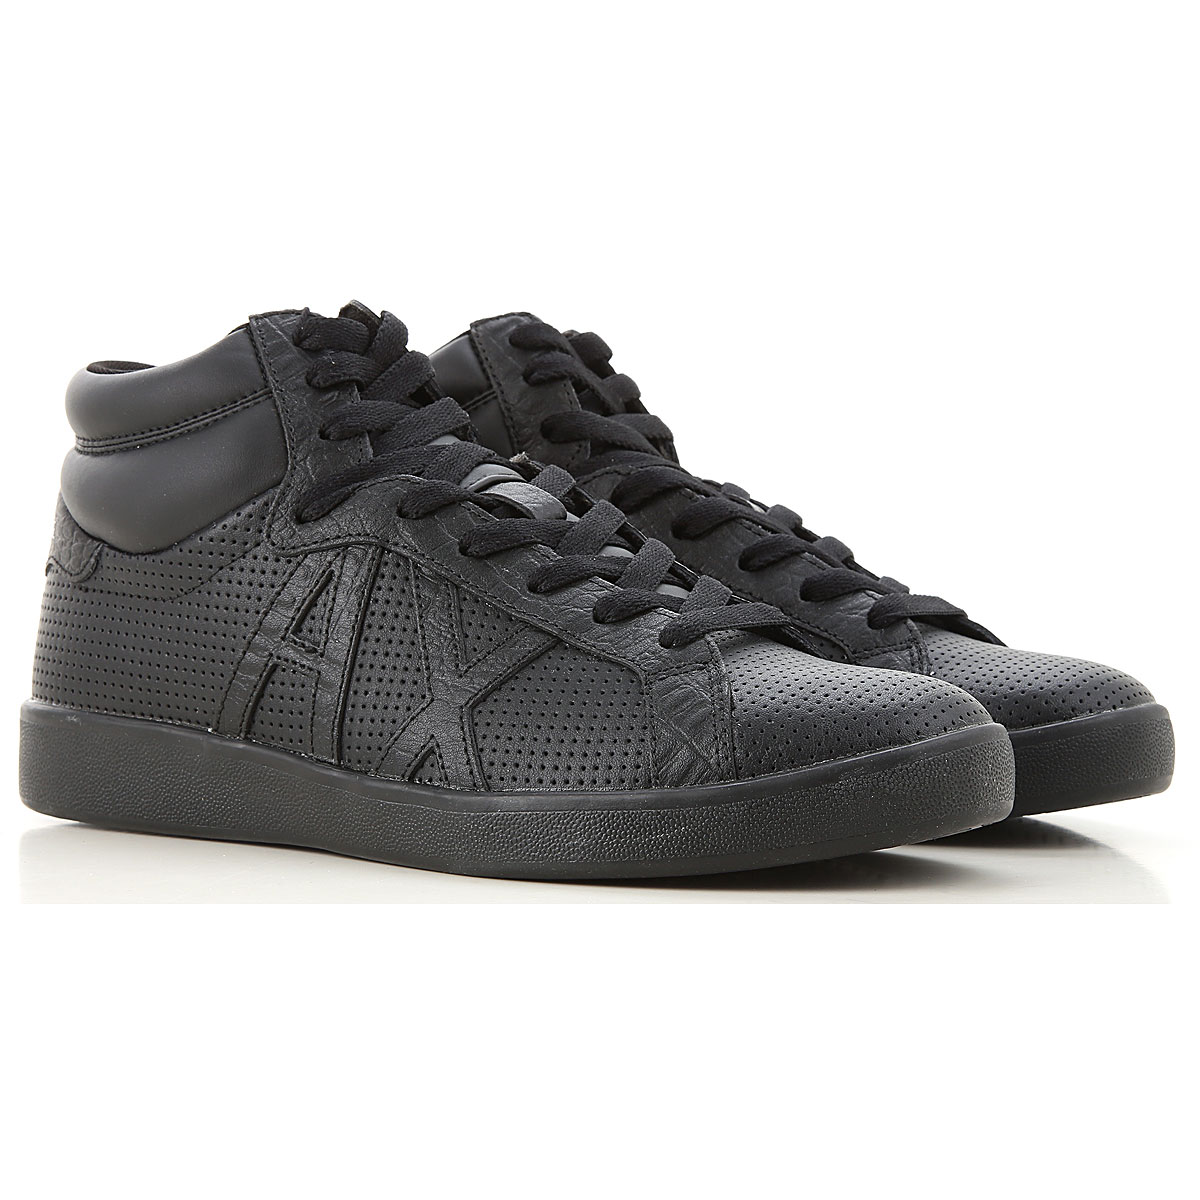 Armani Exchange Sneakers for Men On Sale, Black, Leather, 2019, 7 9